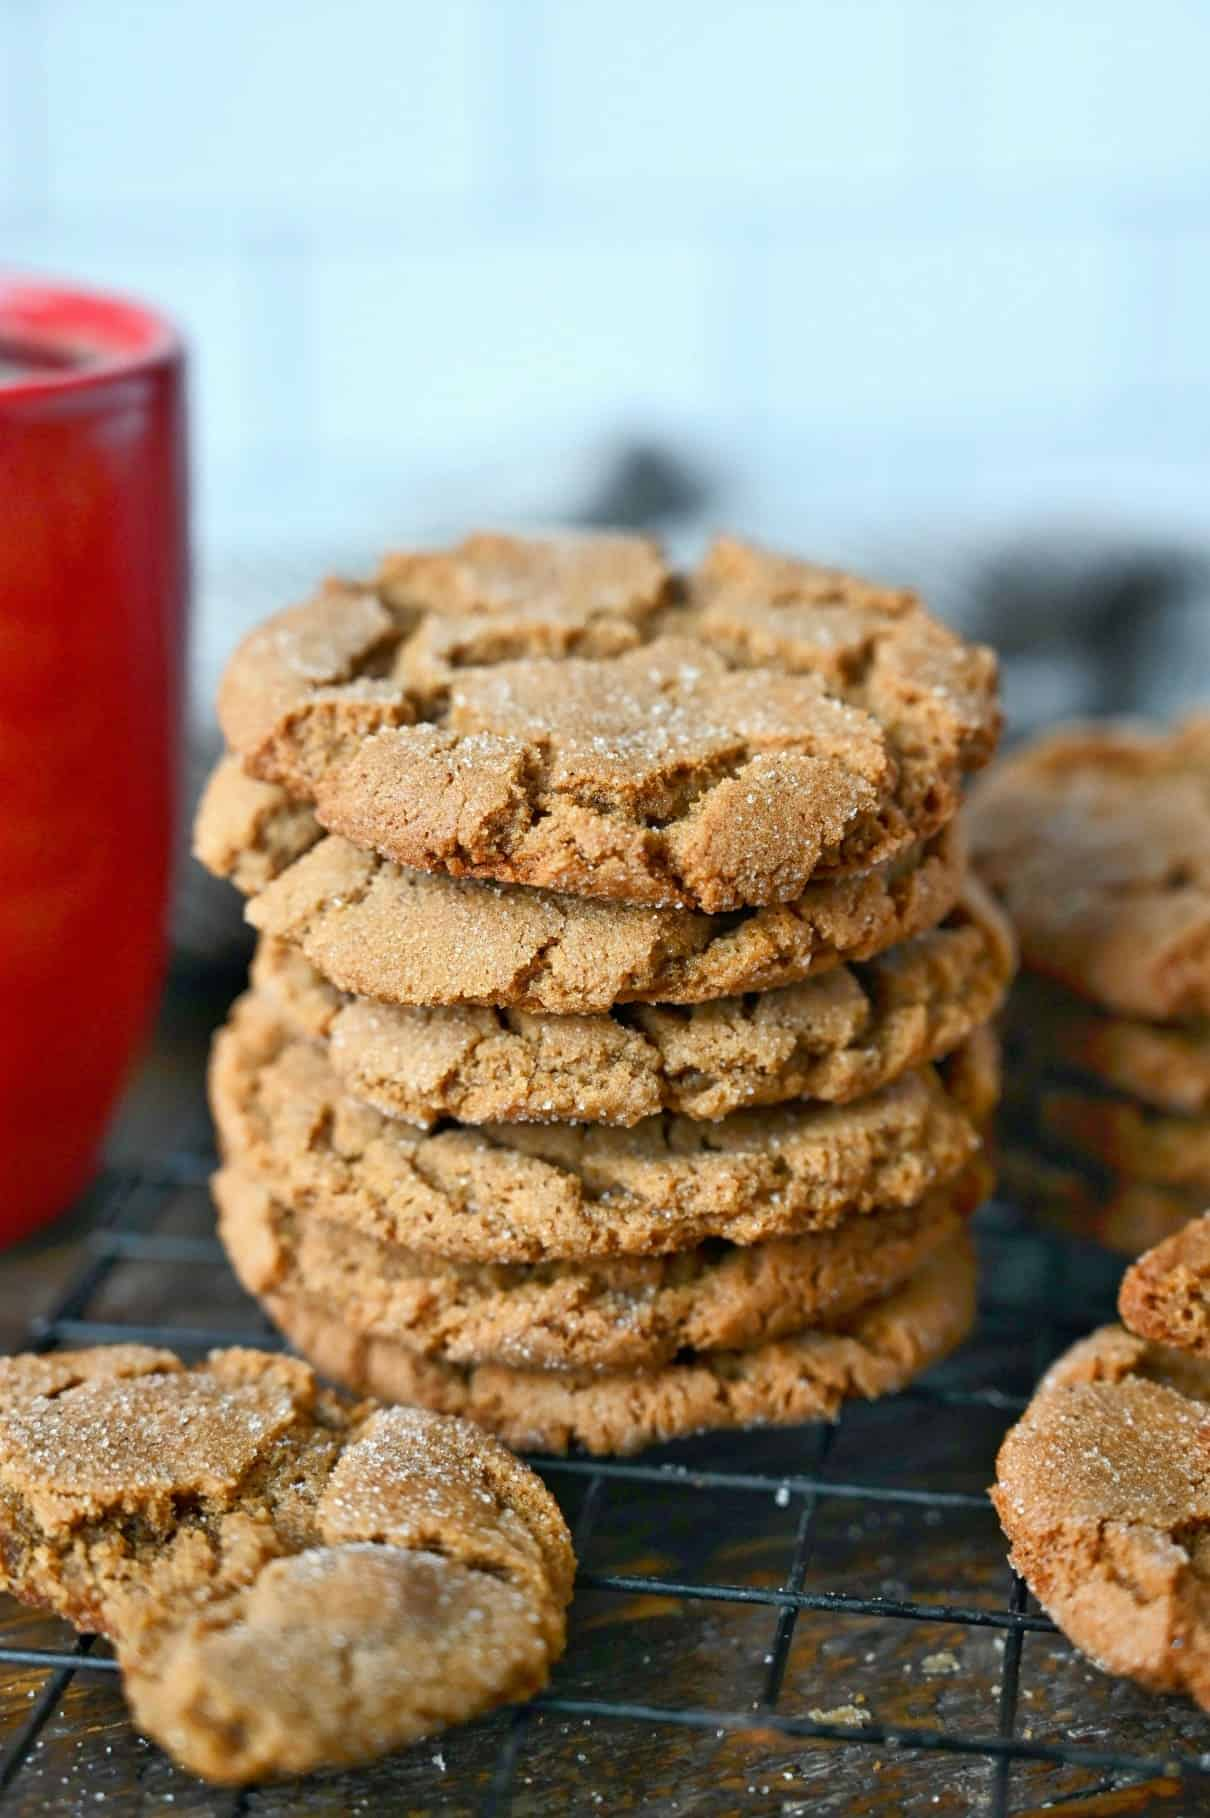 Ginger snap cookies stalked uo on a cooling rack.